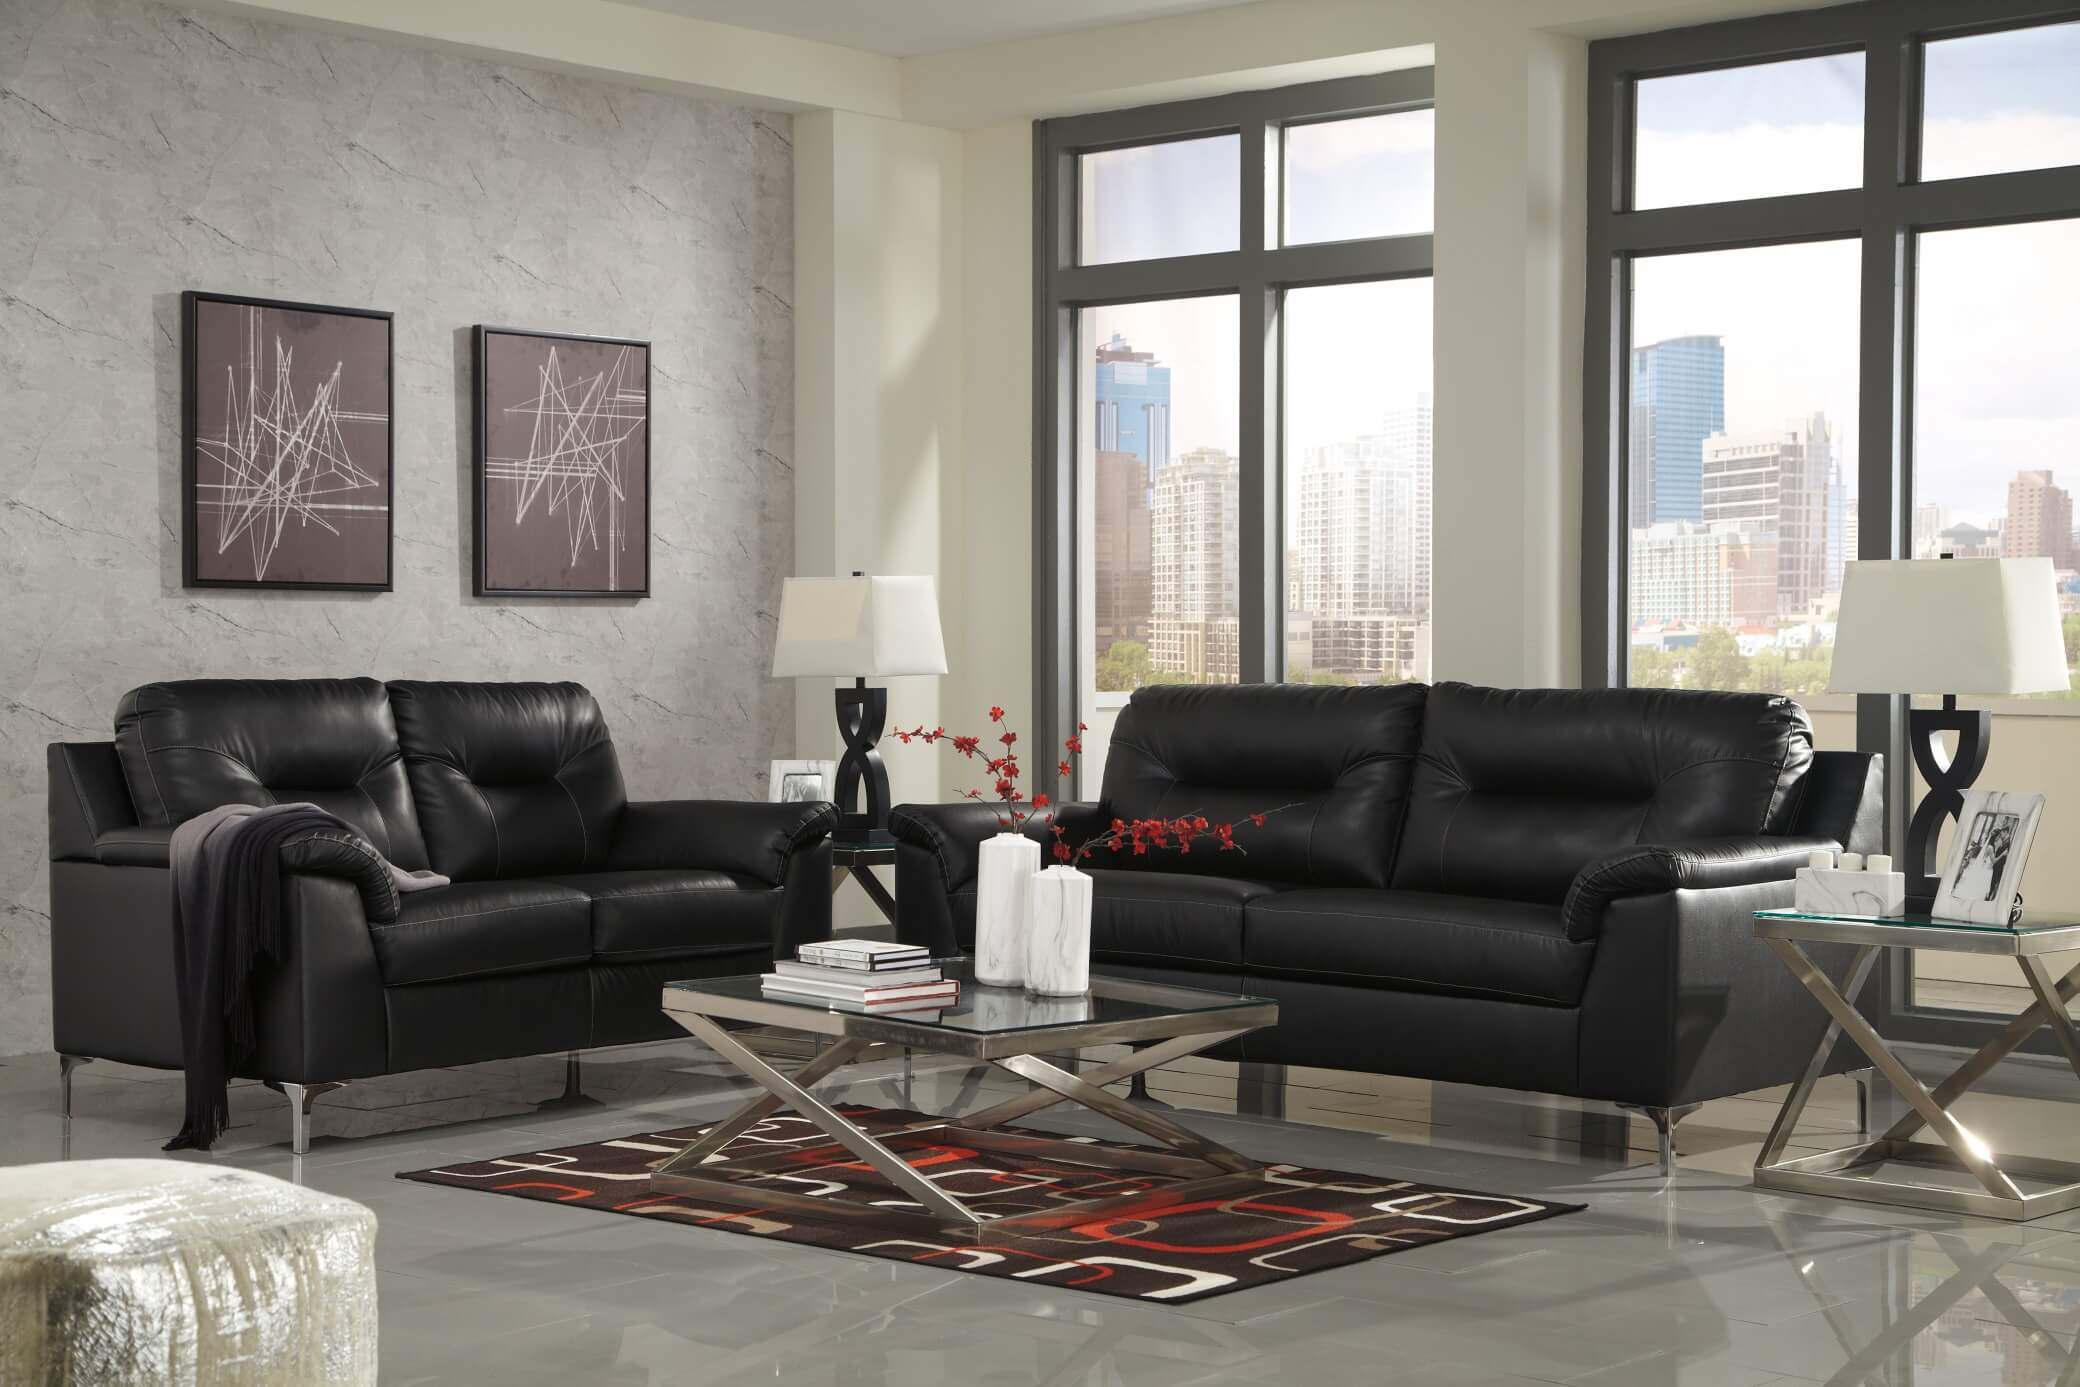 Contemporary Living Set 39604 Tensas Black Contemporary Living Room Set